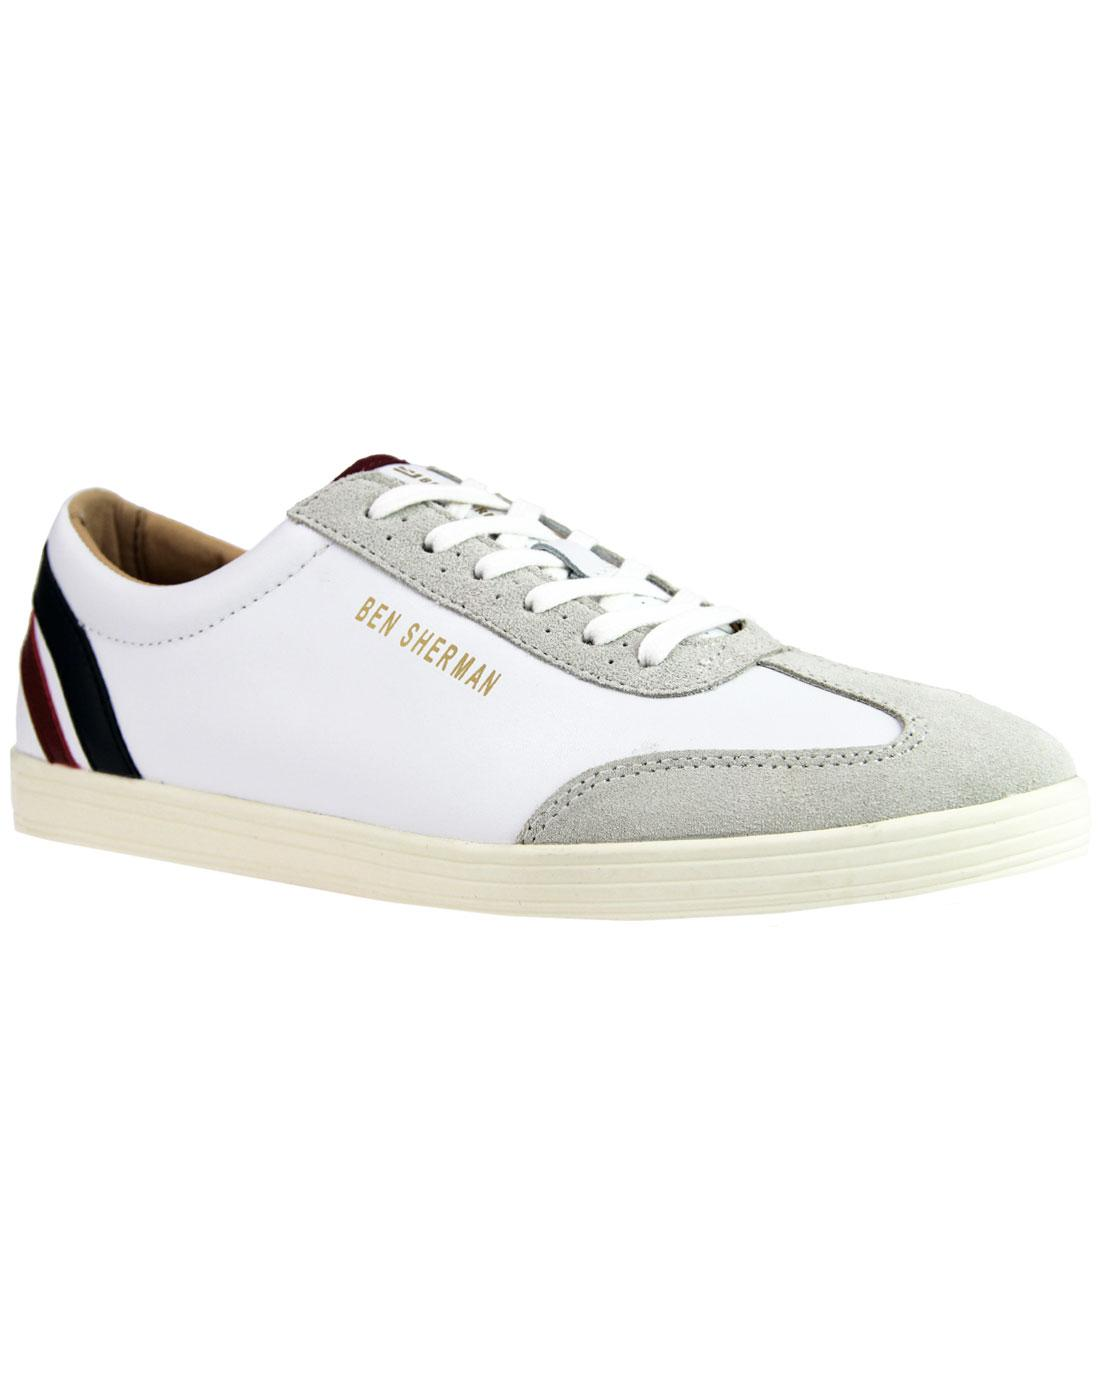 Albion BEN SHERMAN Retro Mod Target Trainers WHITE